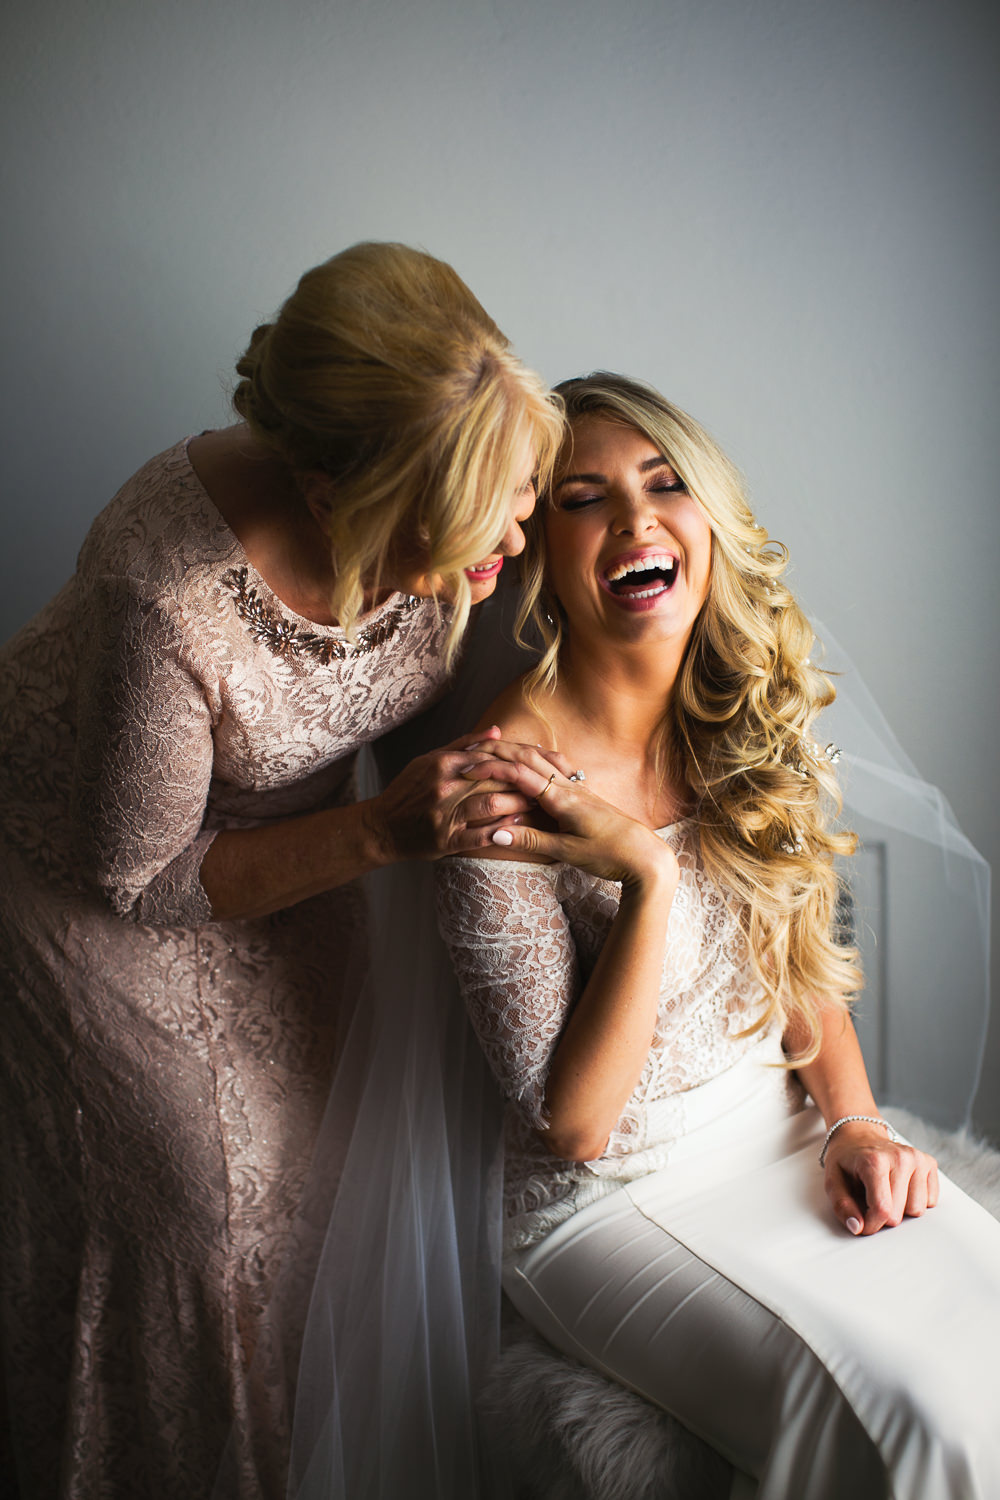 Ebell Long Beach Wedding - Bride laughing